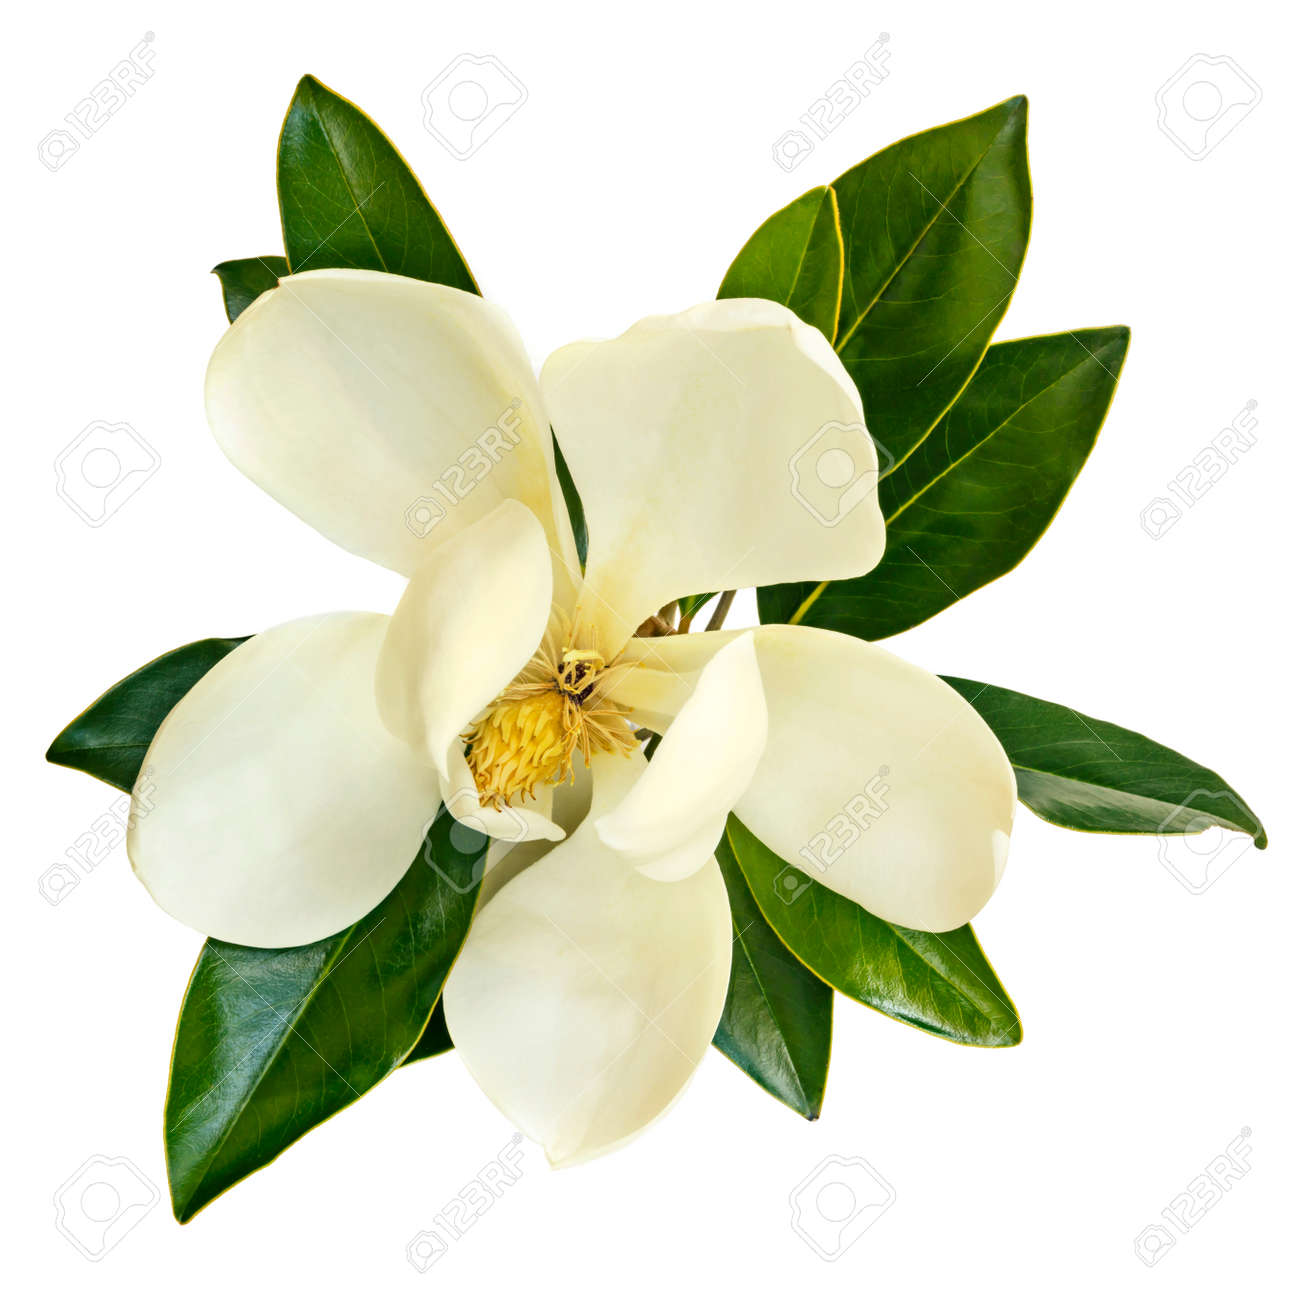 Magnolia flower, top view, isolated on white. Little Gem evergreen variety. - 92702710